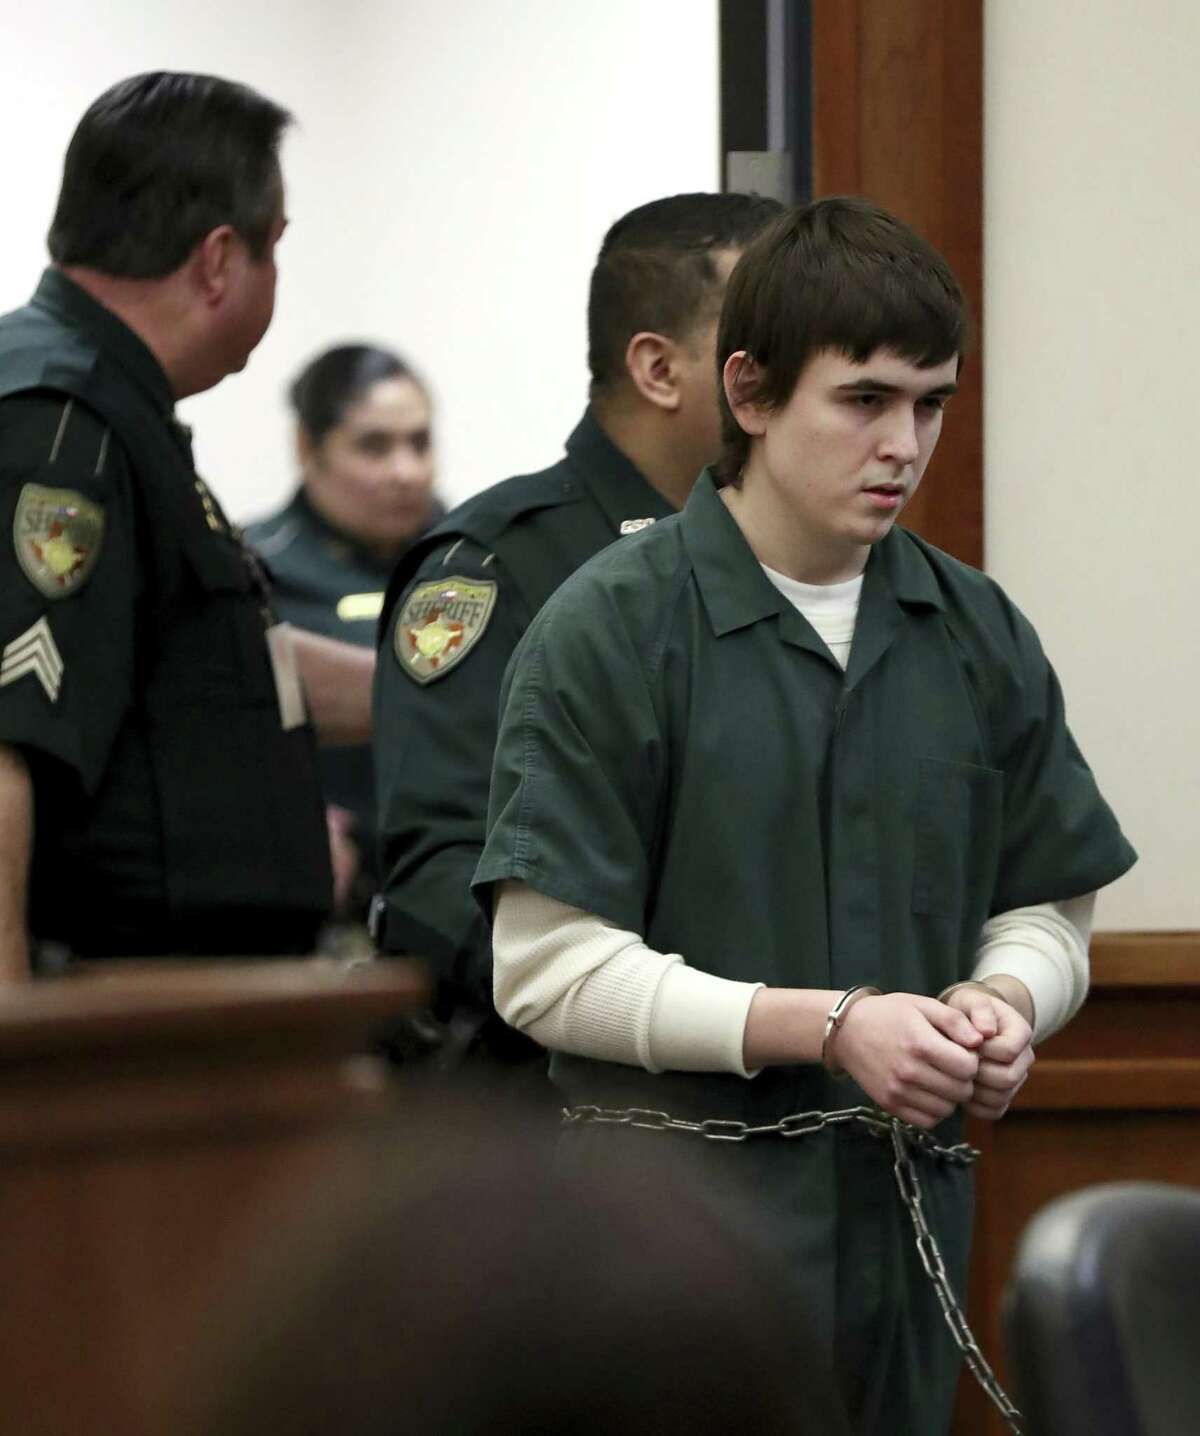 Dimitrios Pagourtzis, the Santa Fe High School student accused of killing 10 people in a May 18 shooting at the high school, is escorted by Galveston County Sheriff's Office deputies into the jury assembly room for a change of venue hearing at the Galveston County Courthouse in Galveston, Texas on Monday, Feb. 25, 2019. The trial of Pagourtzis may be delayed for a year as federal investigators have yet to deliver key evidence, prosecutors said Monday.